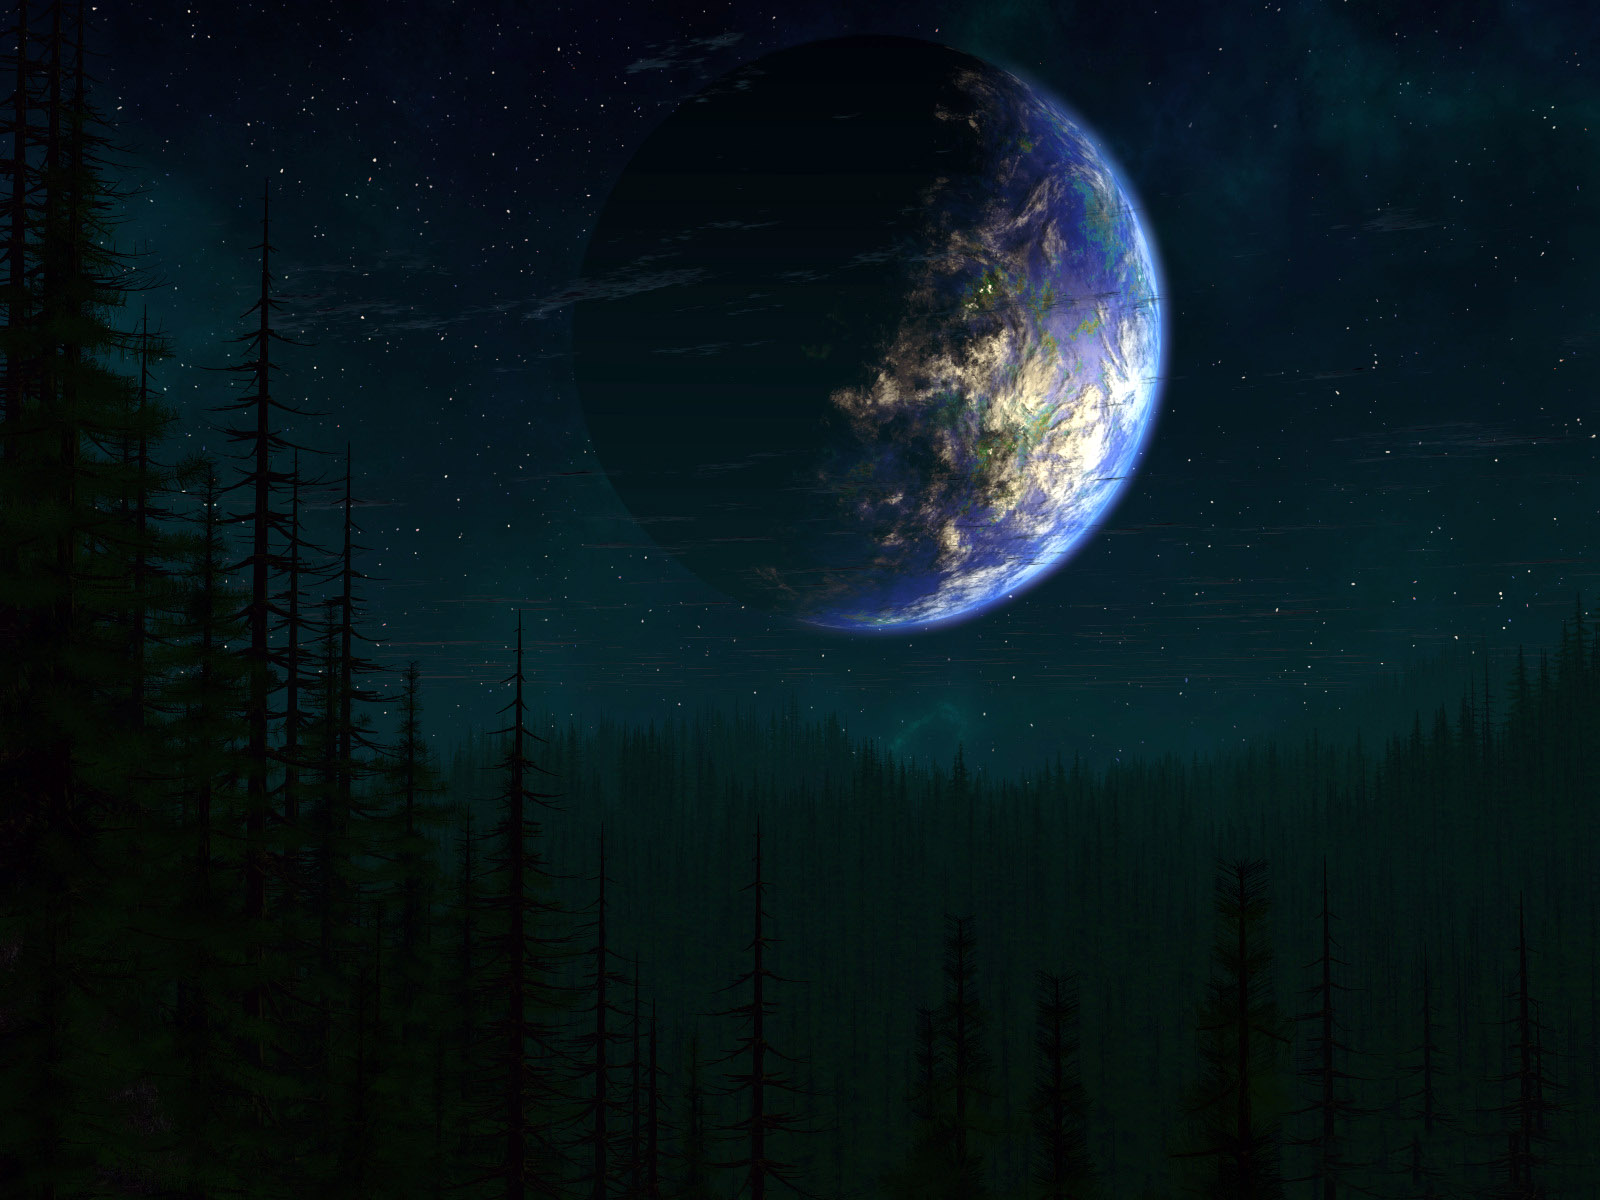 A look at the planet earth from the side, wallpaper of a series of other universes.